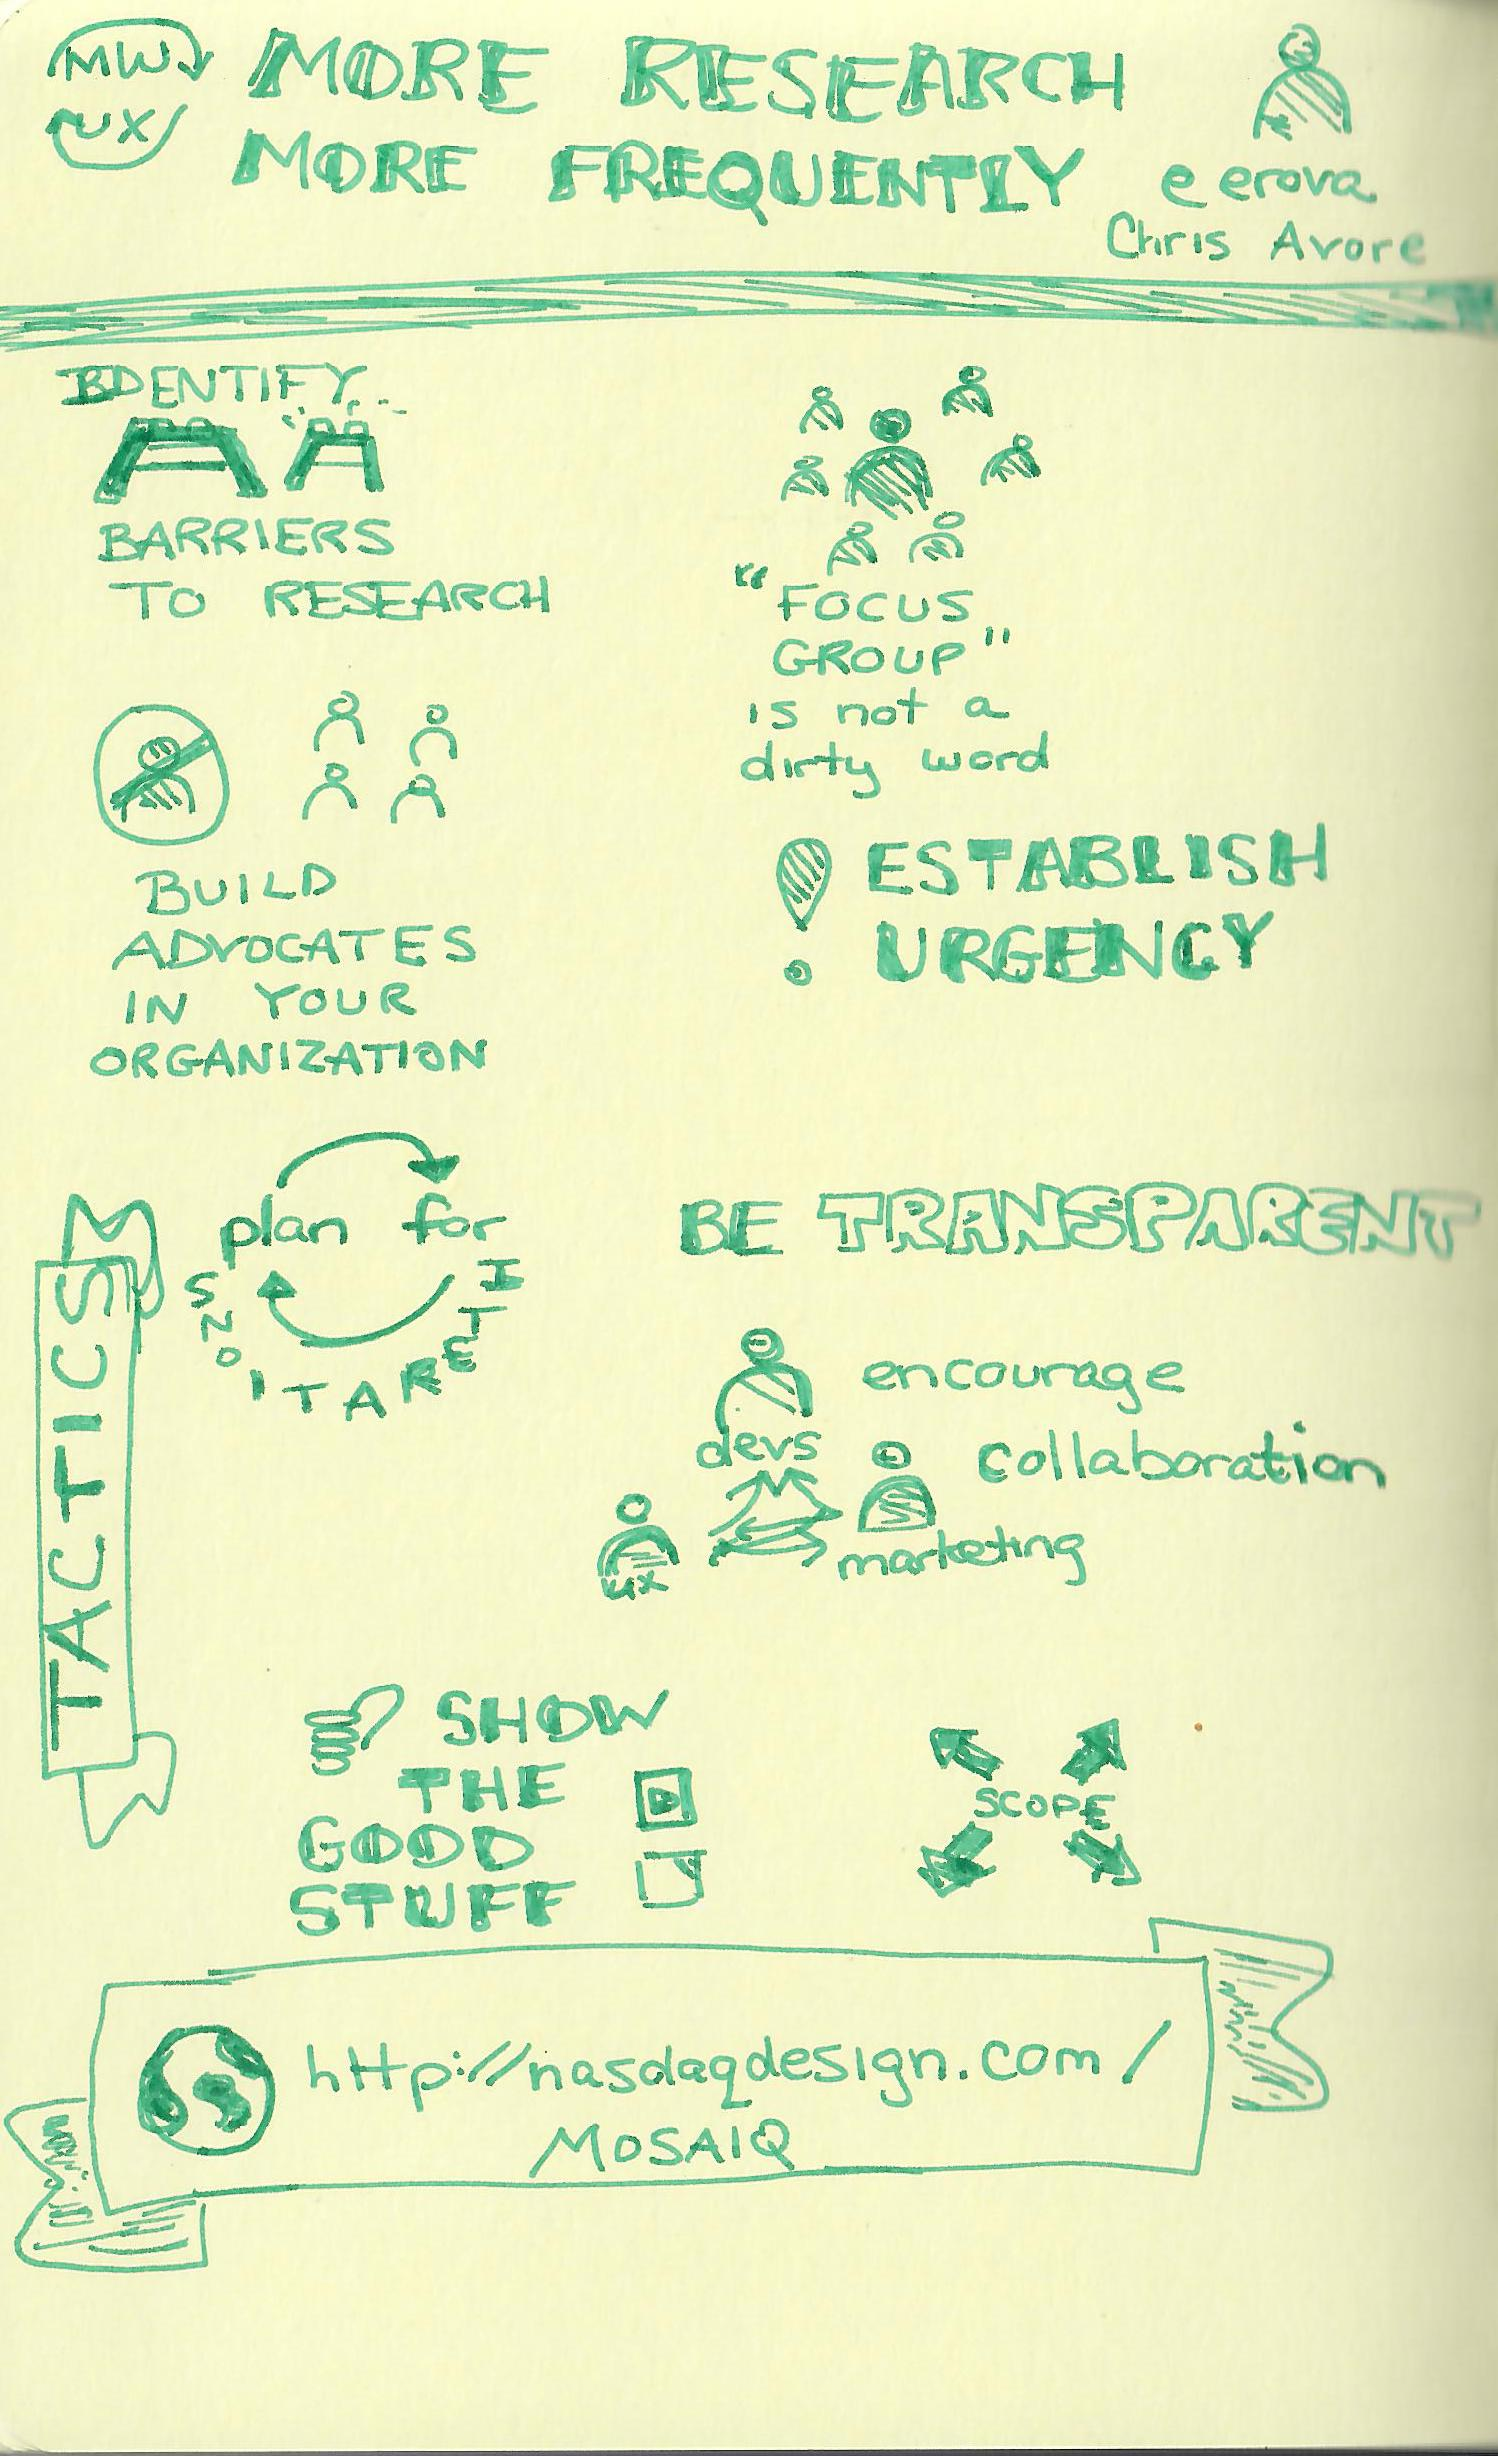 More Research More Frequently (Chris Rova).jpg